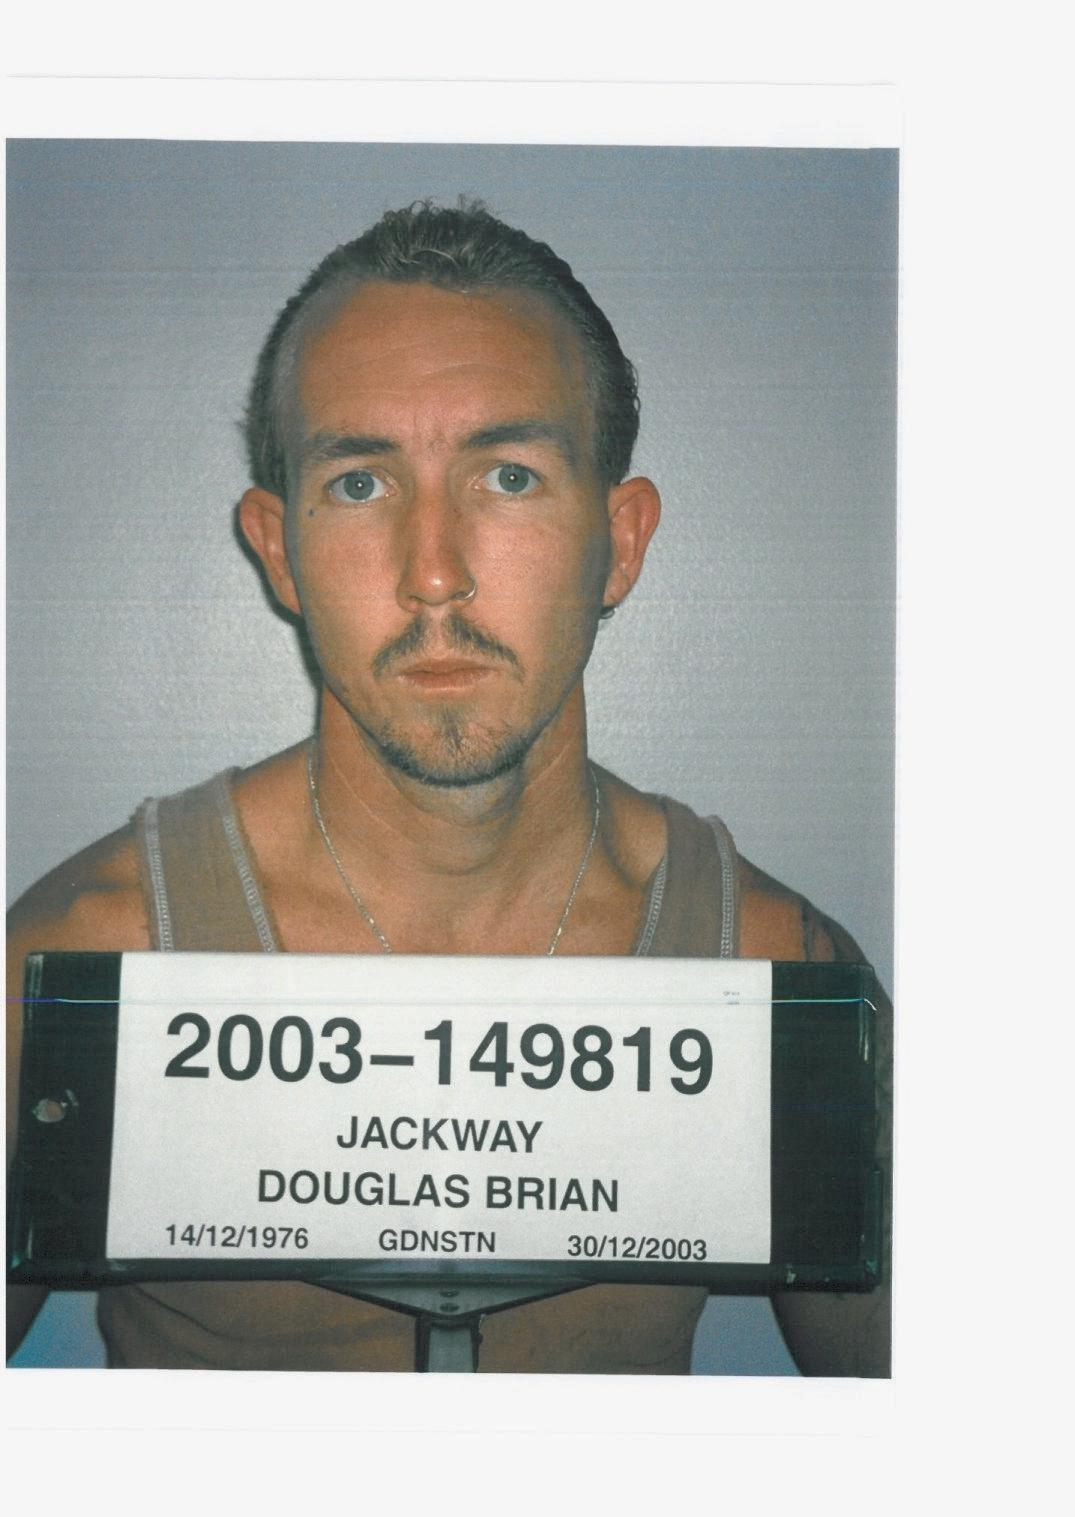 Douglas Brian Jackway will remain in jail indefinitely